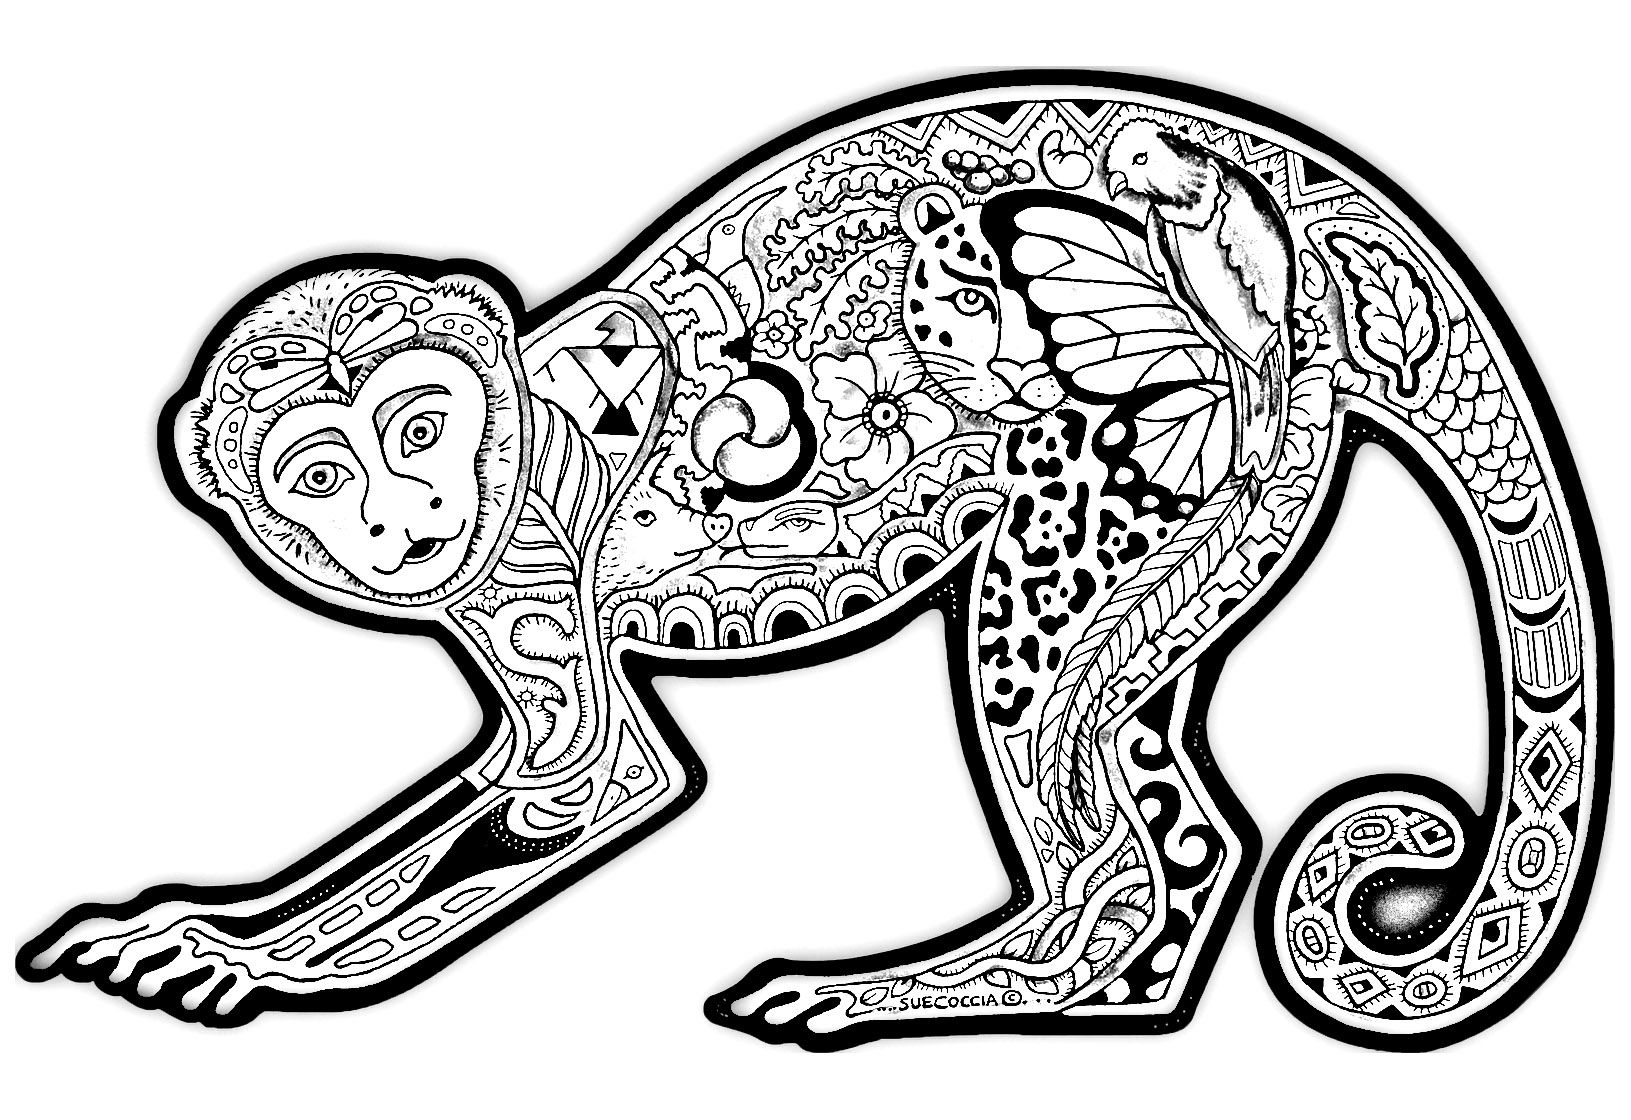 quirkles coloring pages for adults - photo#29